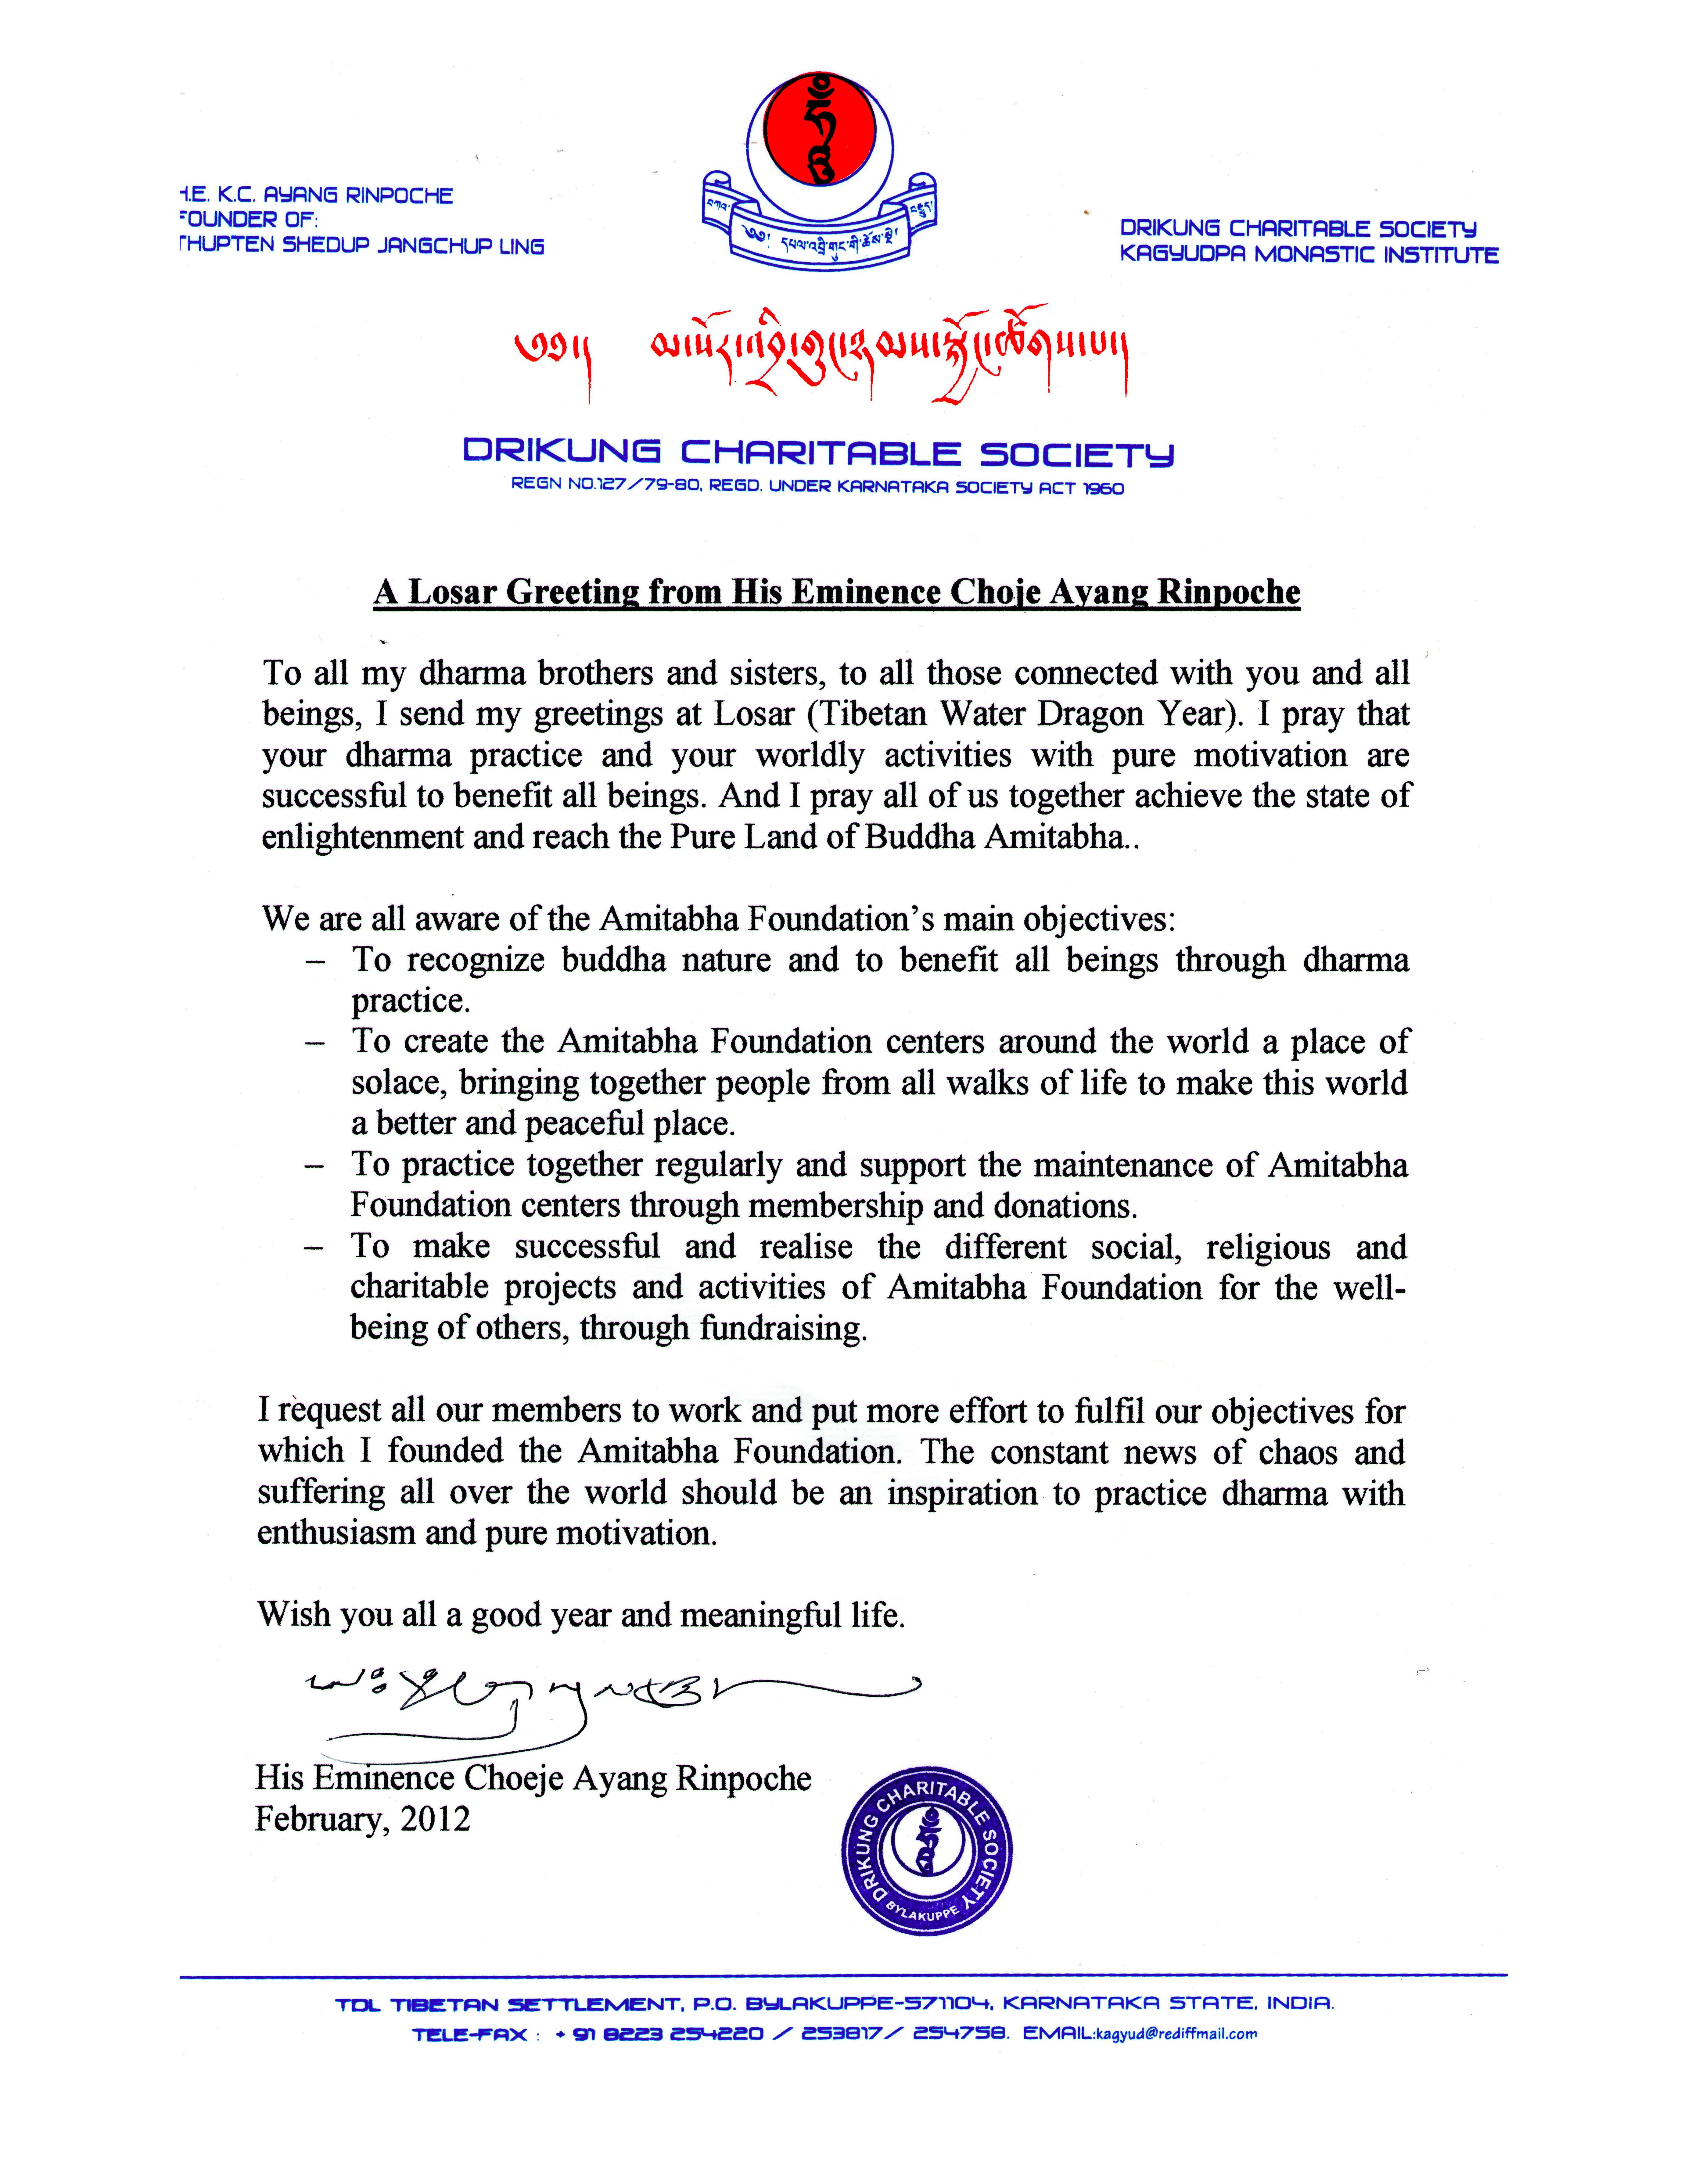 Losar letter from Ayang Rinpoche